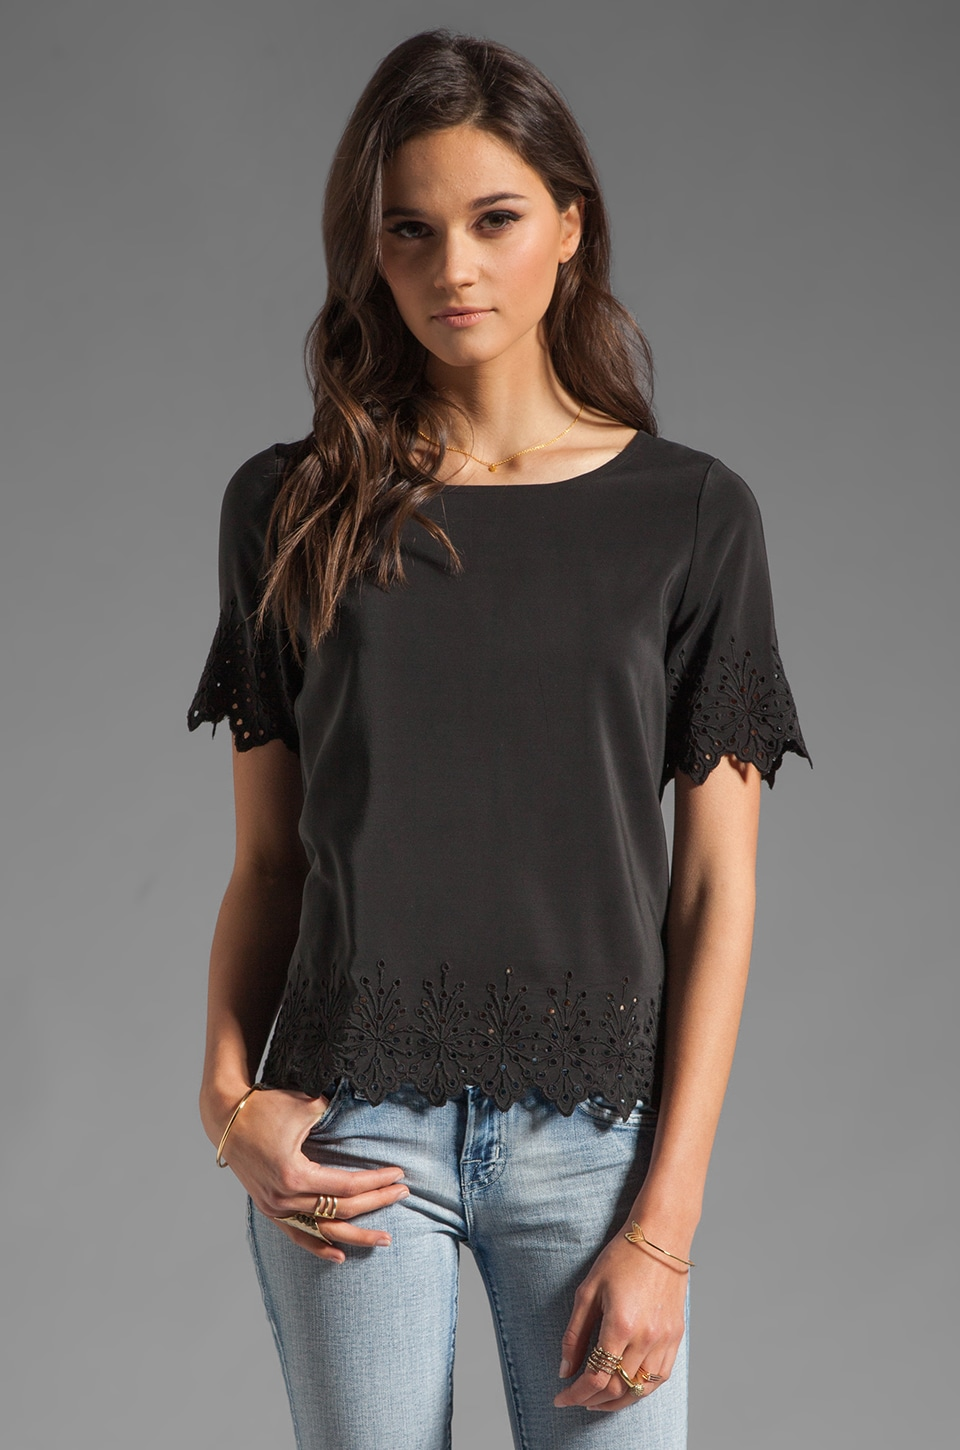 Joie Florine Eyelet Embroidery Top in Caviar